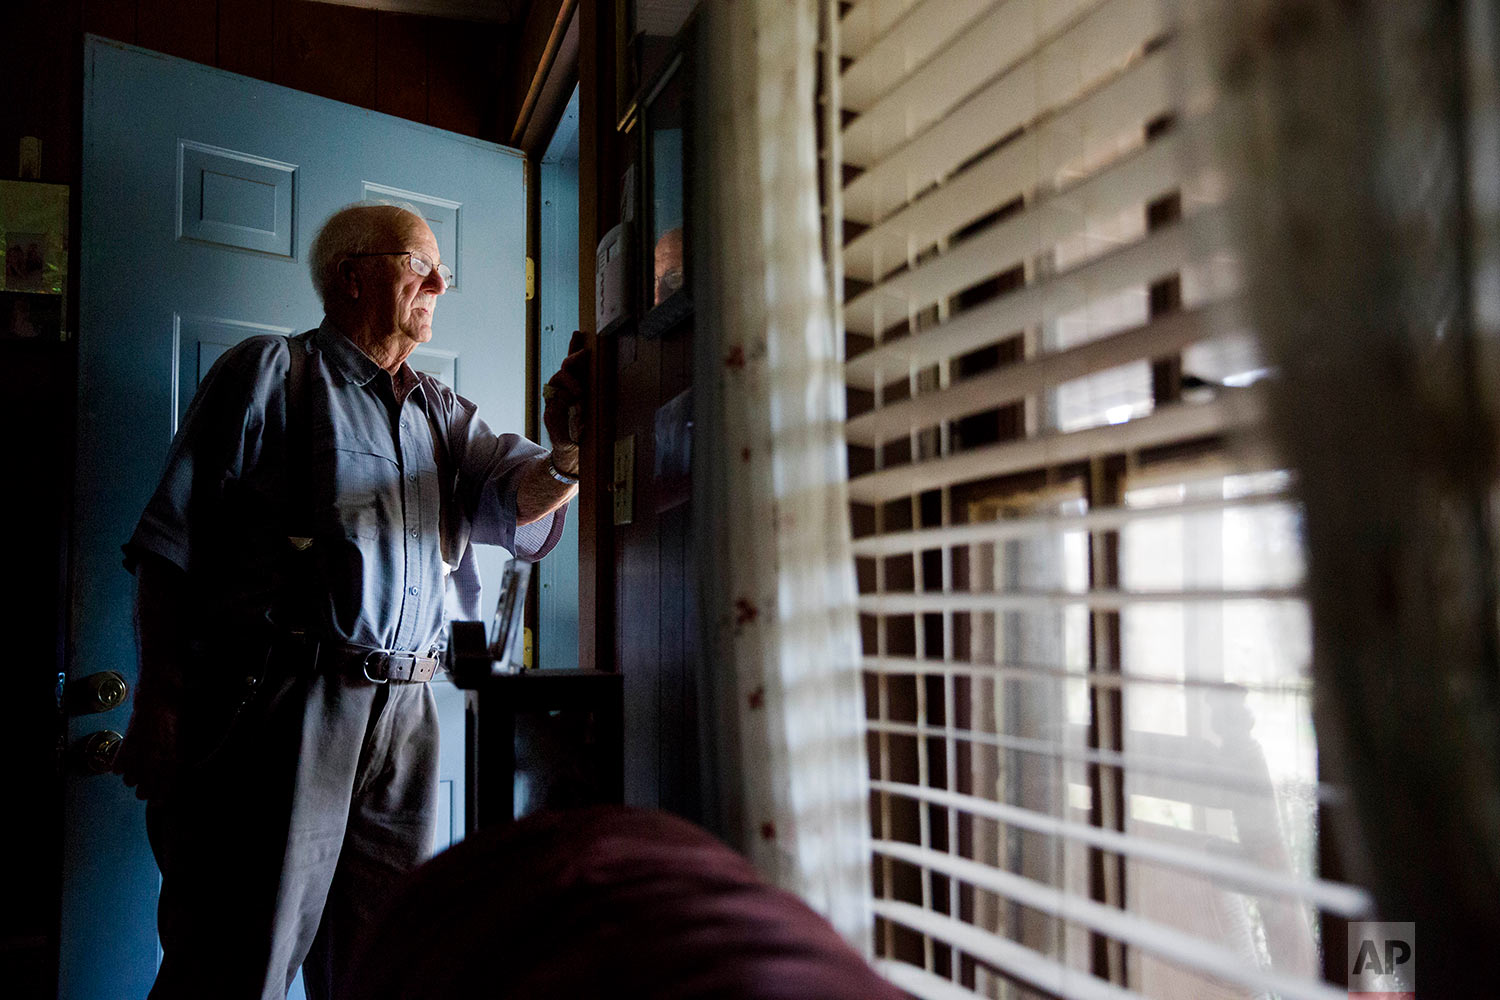 Clinton Adams, believed to be the only living witness to the 1946 lynching of two black couples by a white mob, stands for a portrait in his home in Winder, Ga., Thursday, Feb. 22, 2018. (AP Photo/David Goldman)